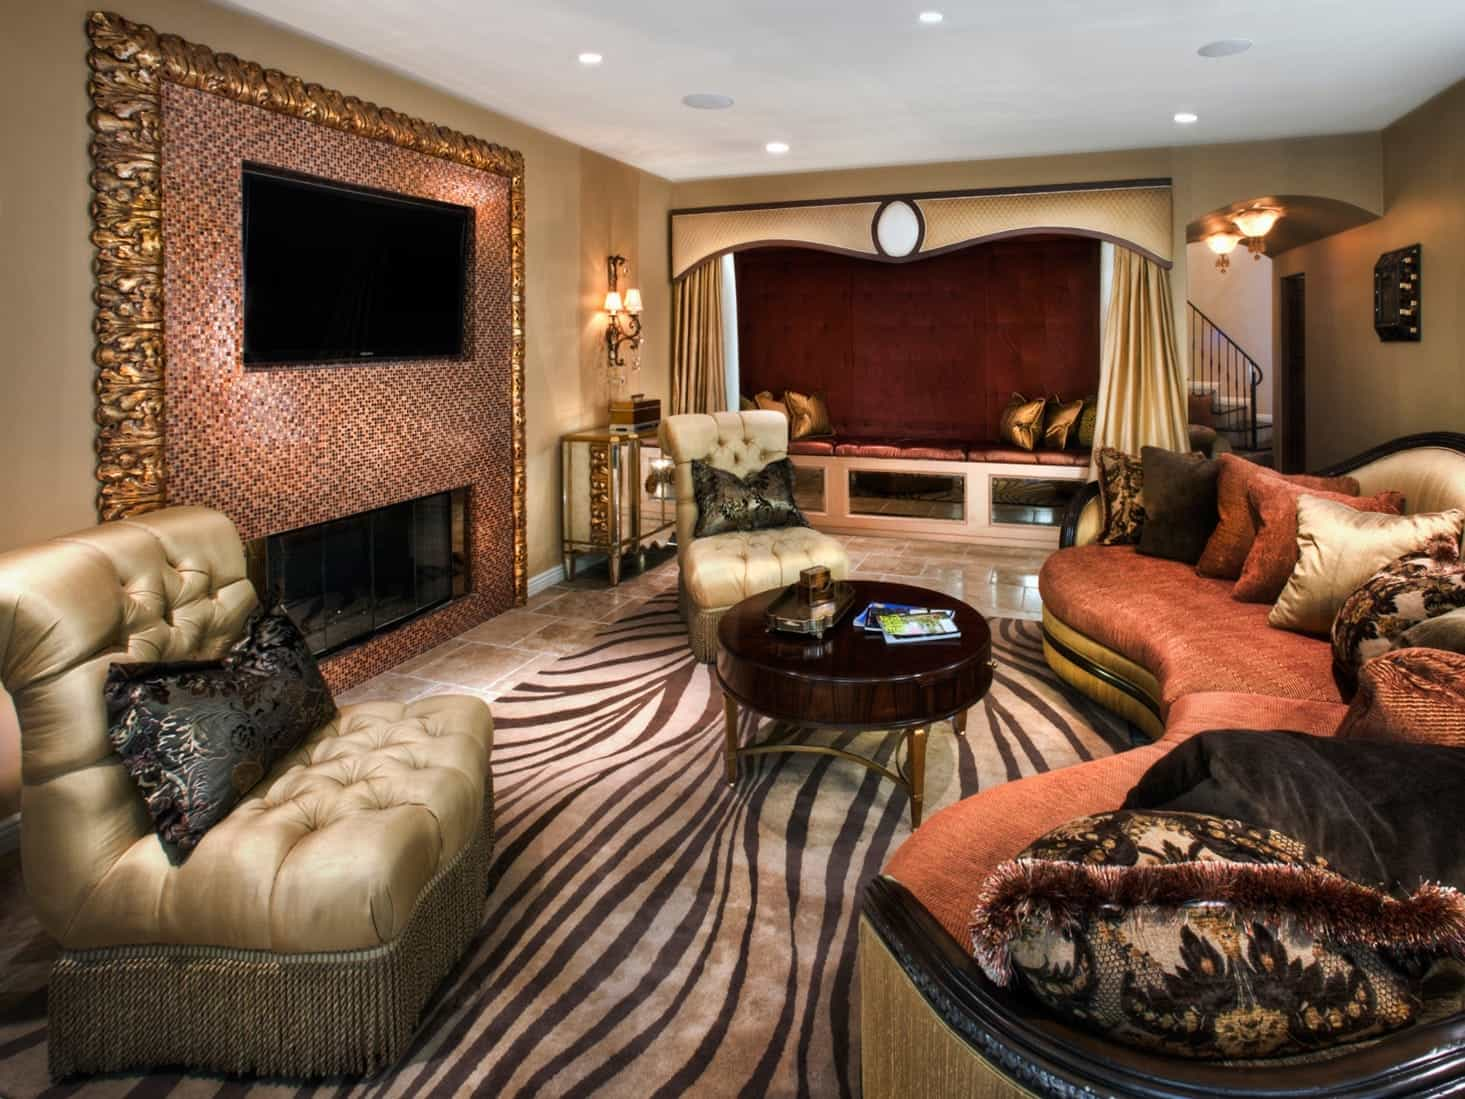 Modern Eclectic Living Room With Royal Sofa And Zebra Print Rug (Image 22 of 31)